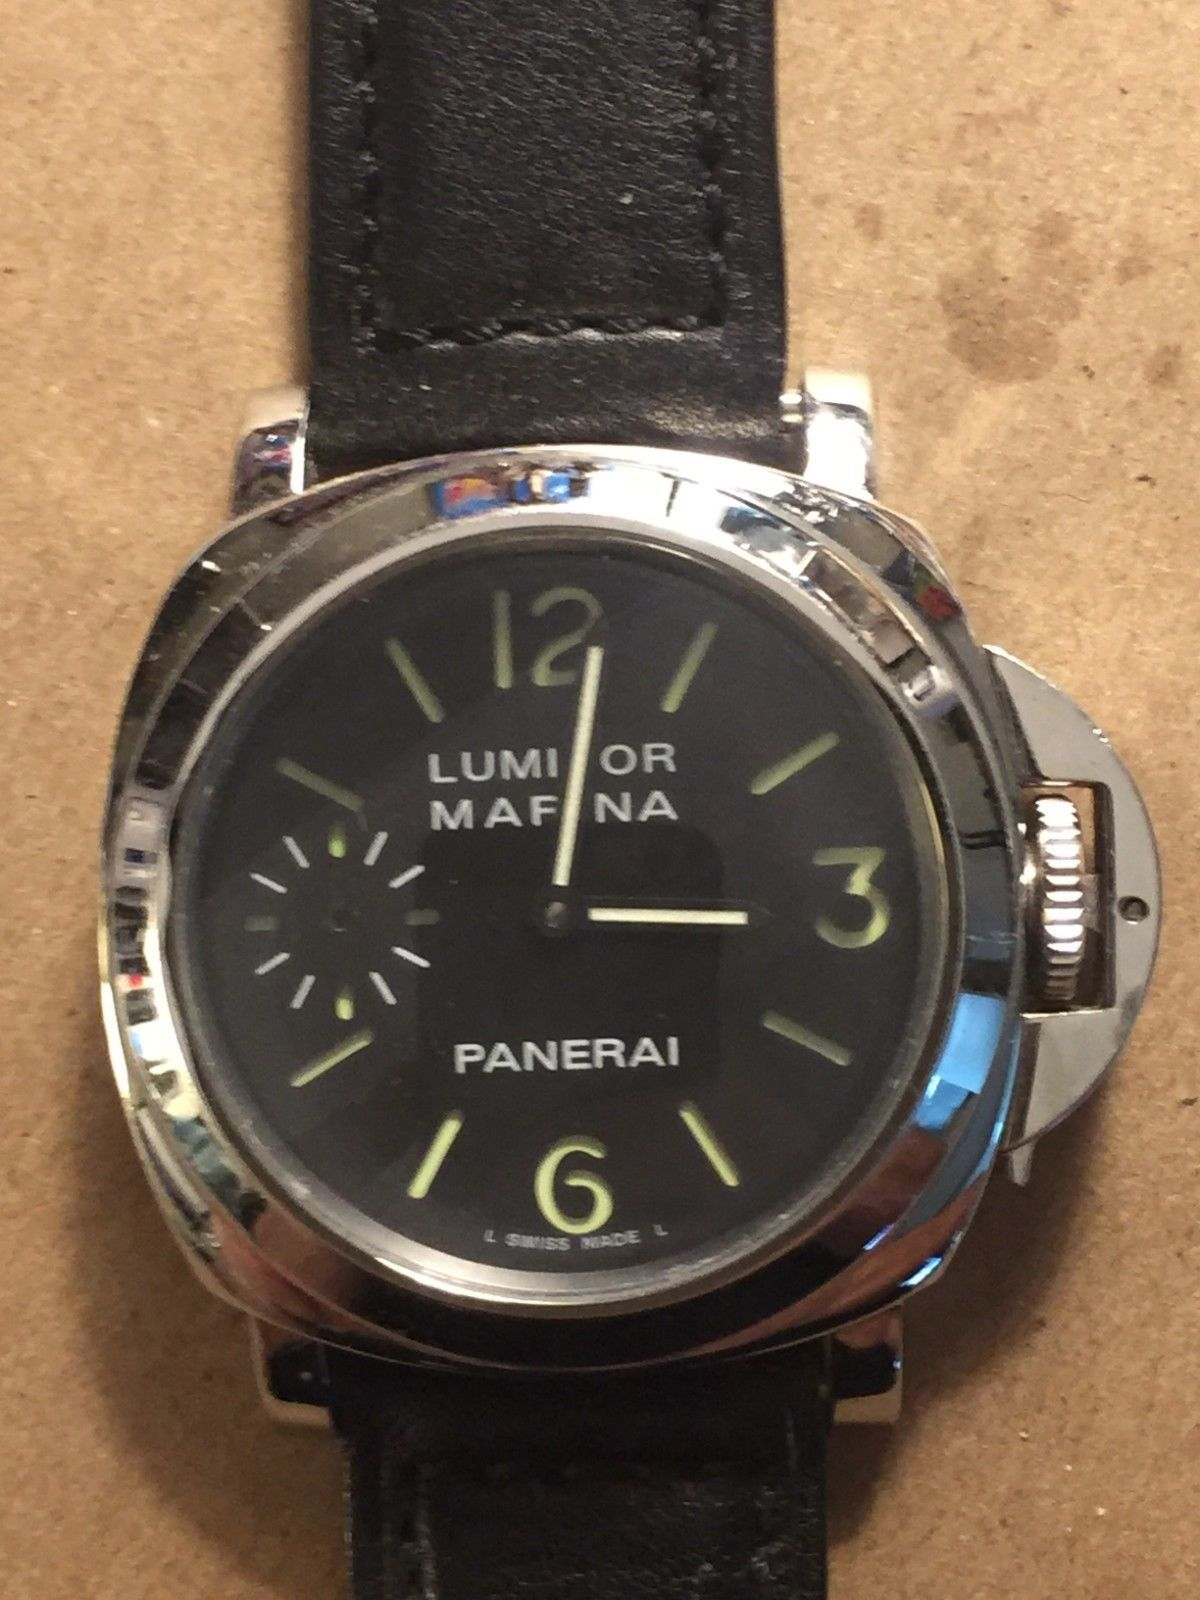 ac6622d0f98 Panerai Luminor Marina Men s Watch Automatic OP6567 H0035 2000 ...